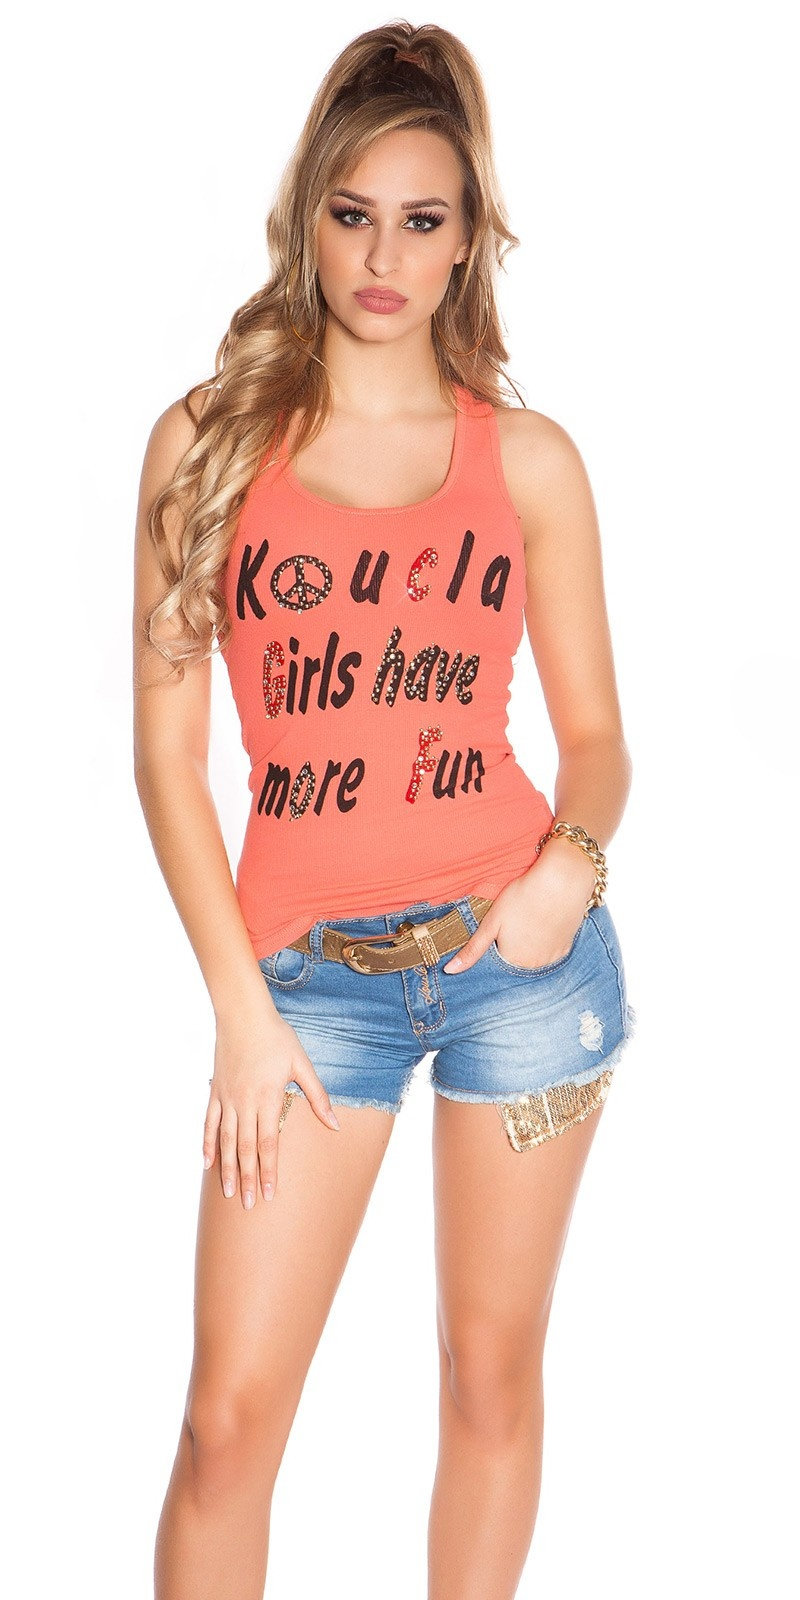 Sexy koucla girls have more fun tanktop met studs koraal-kleurig